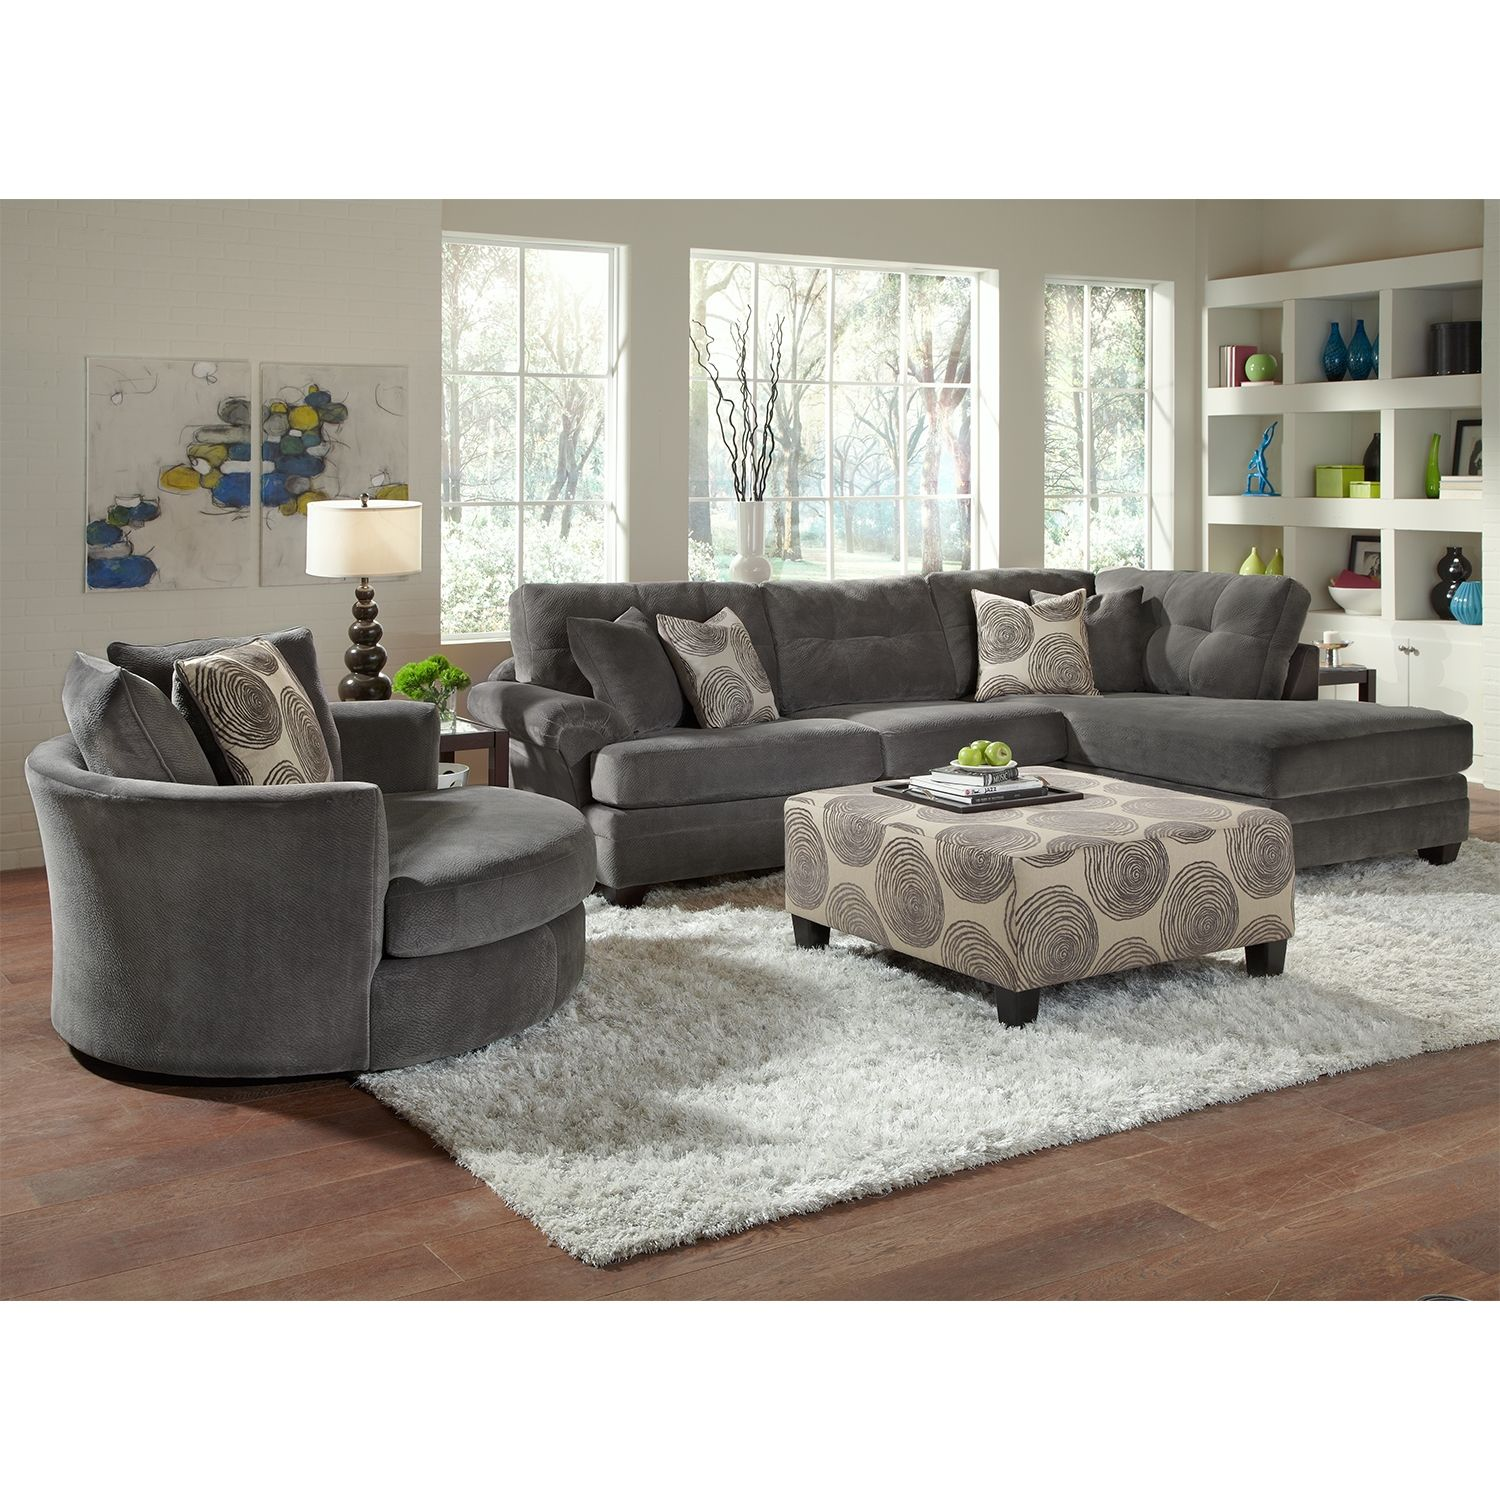 American Signature Furniture   Cordoba Upholstery Collection  love the round  chairCatalina Gray Upholstery 2 Pc  Sectional   Furniture com   Home  . Round Sofa Chair Living Room Furniture. Home Design Ideas